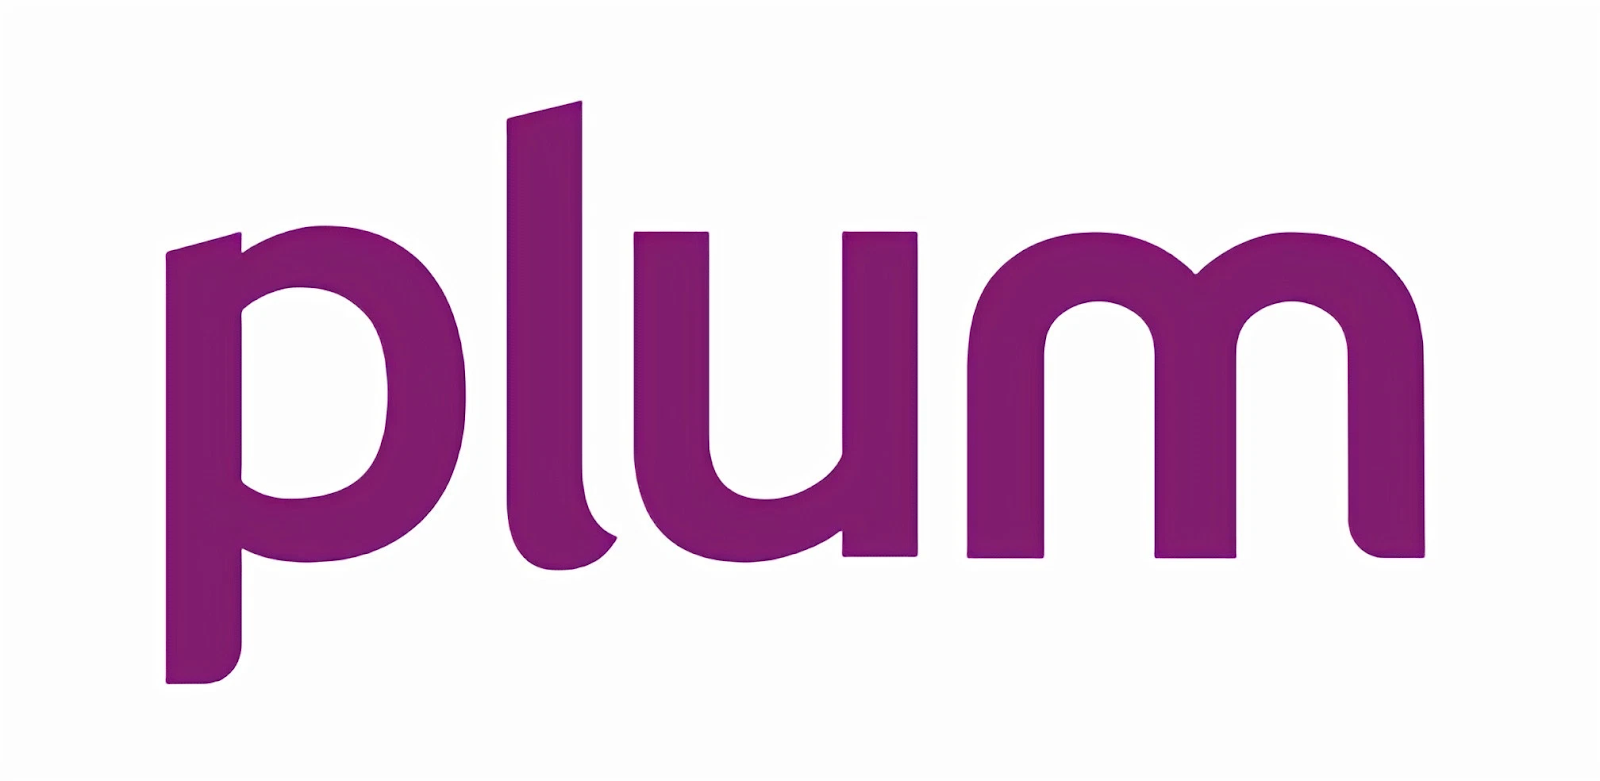 Plum   provides a talent management platform that assesses the talents and potential of candidates and employees to better match them to roles and opportunities, improving employee performance and retention while increasing the diversity of the workplace.